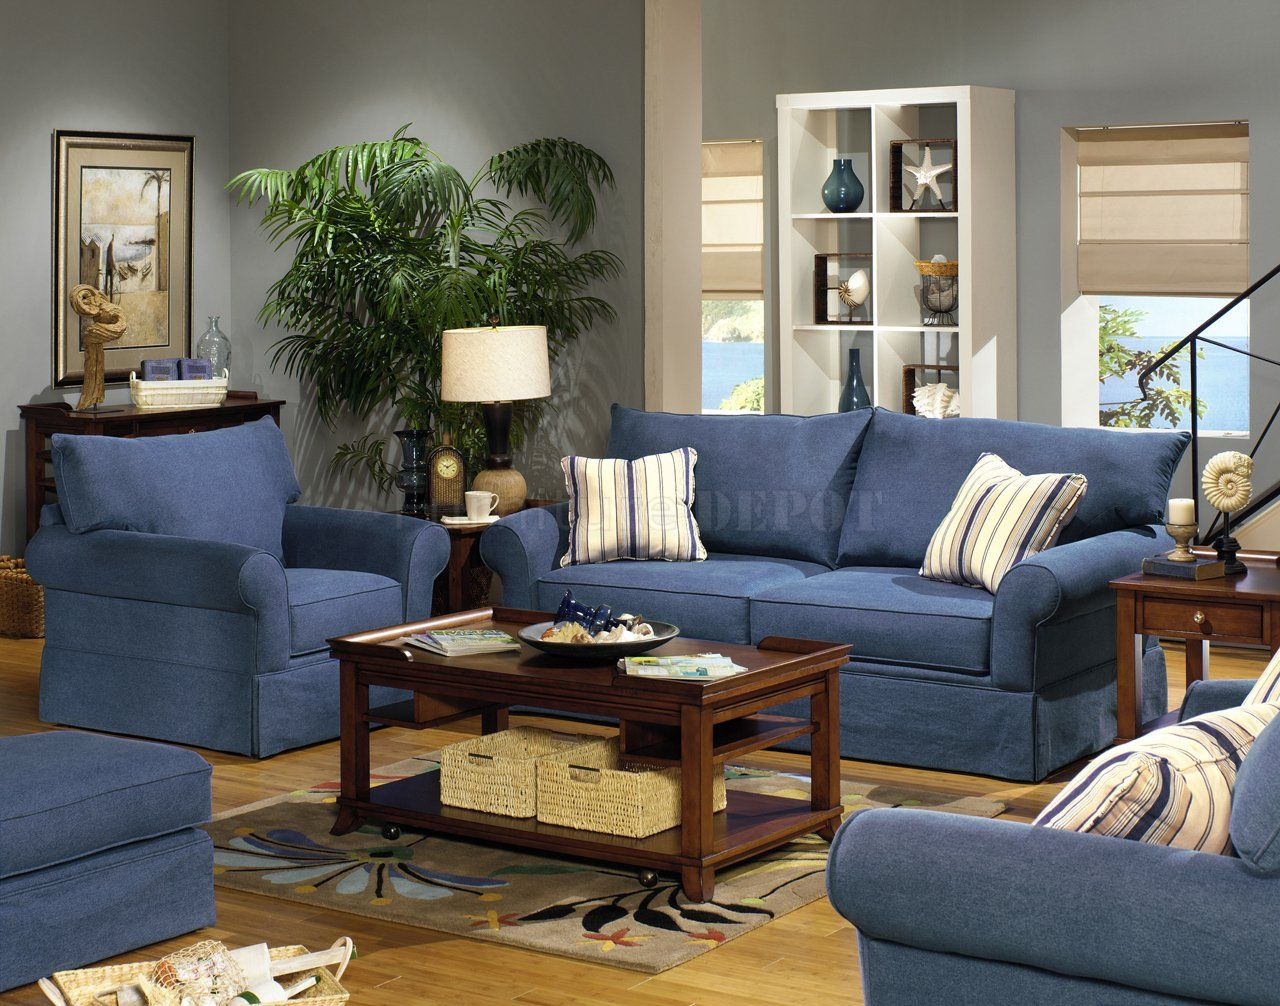 Sofa Set Color Blue Blue Living Room Furniture Sets Blue Denim Fabric Modern